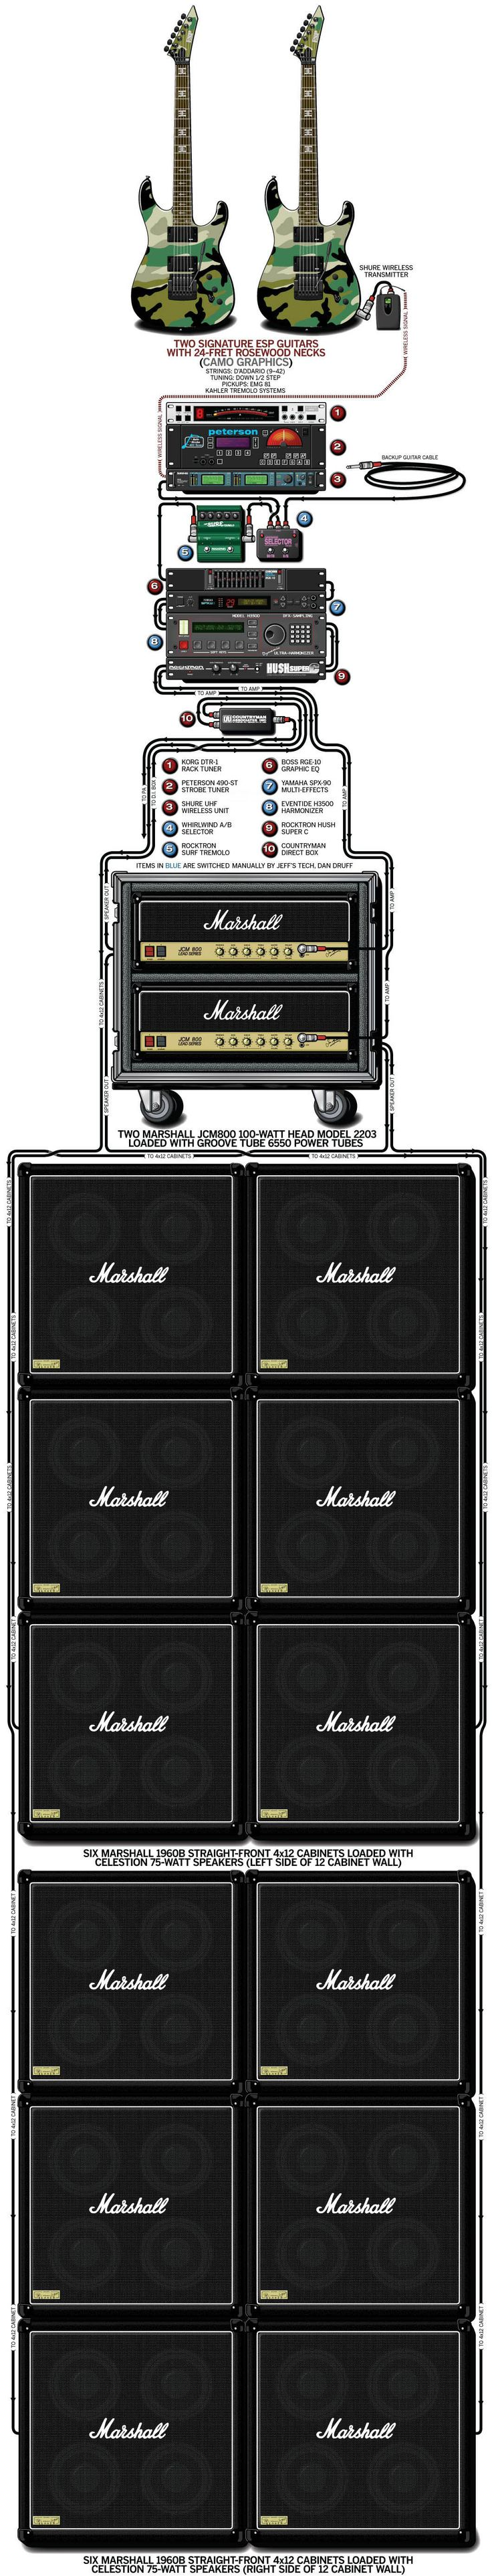 87 best guitar rig images on Pinterest | Guitars, Guitar amp and ...